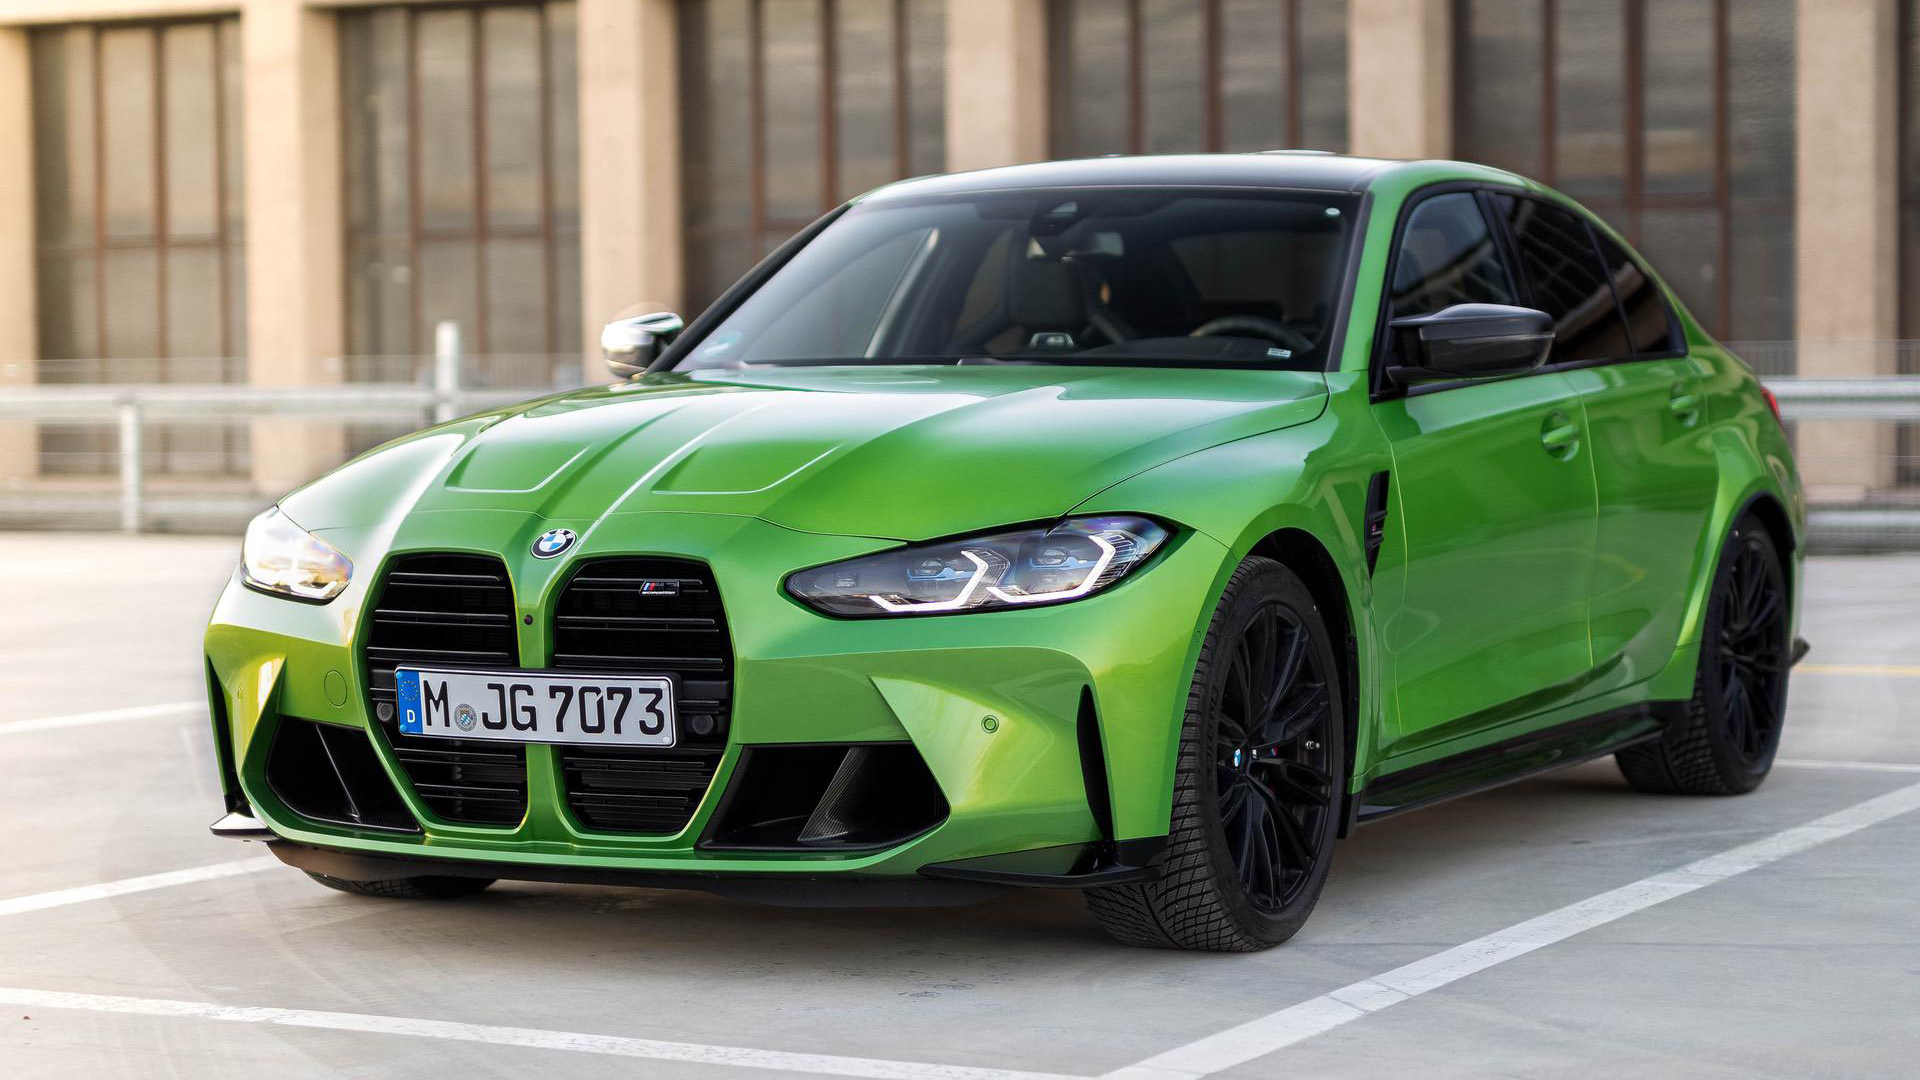 bmw m3 g80 java green